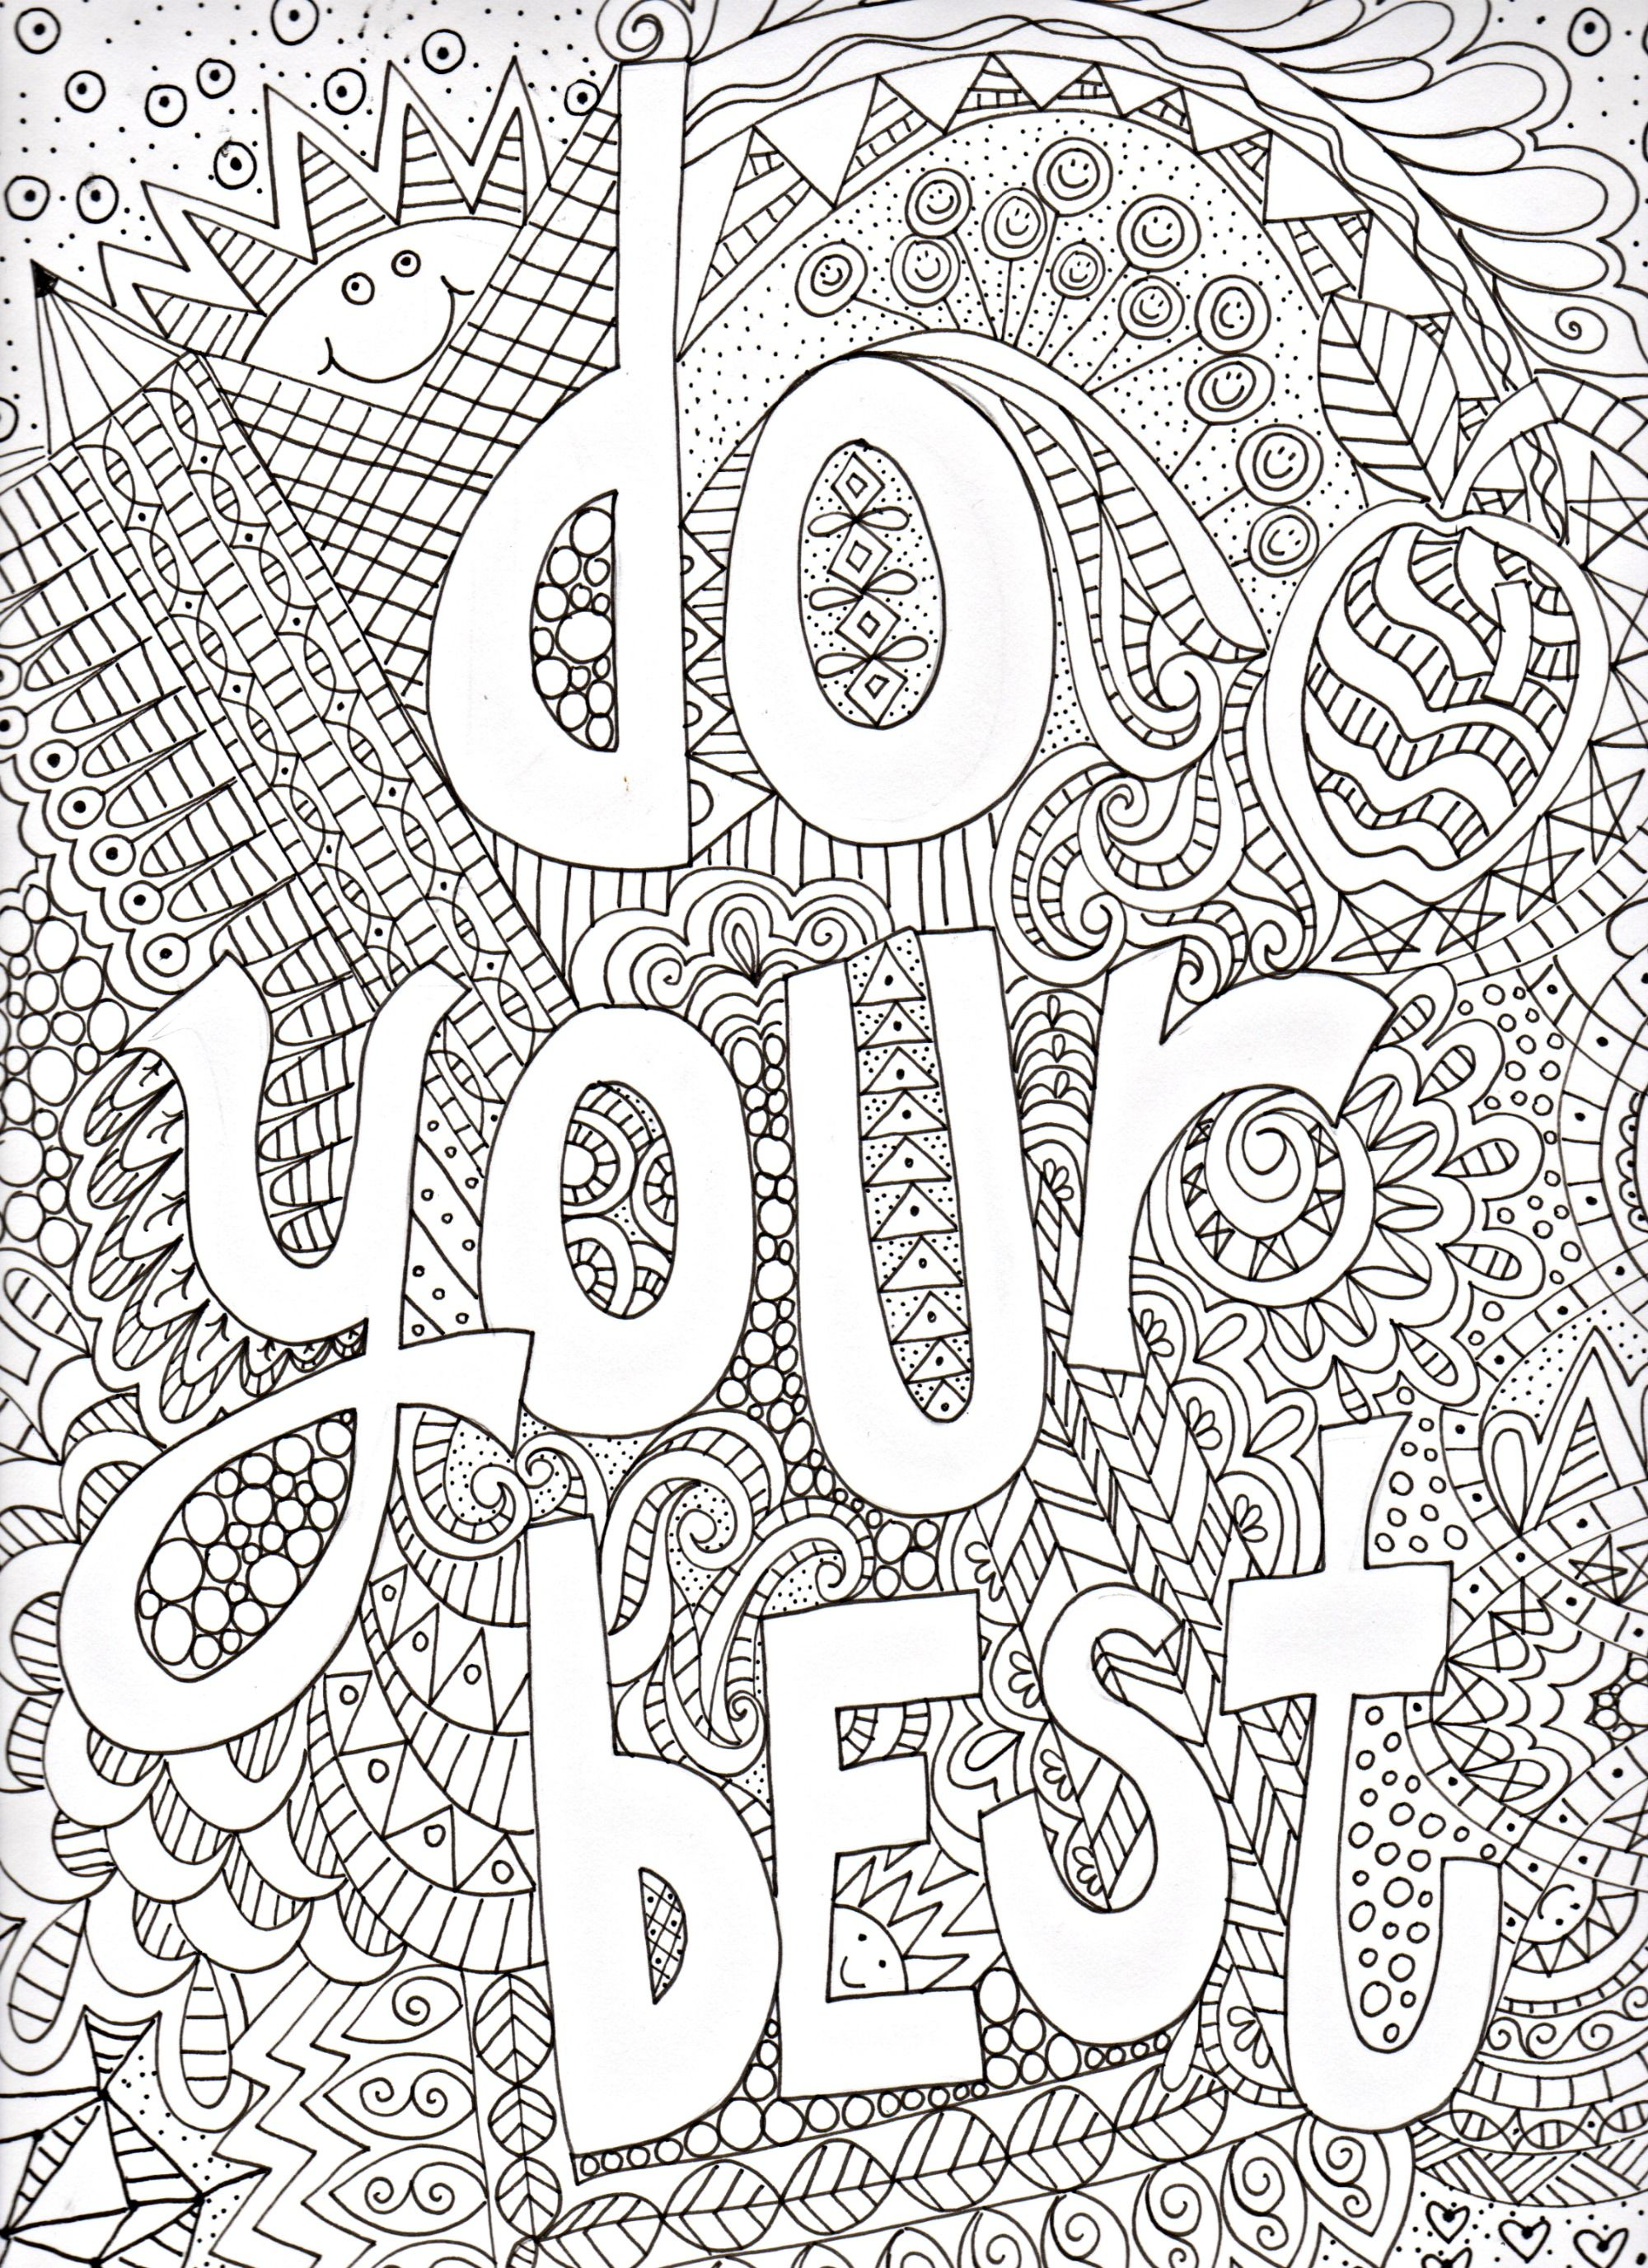 Coloring Pages Art : Free doodle art coloring pages home